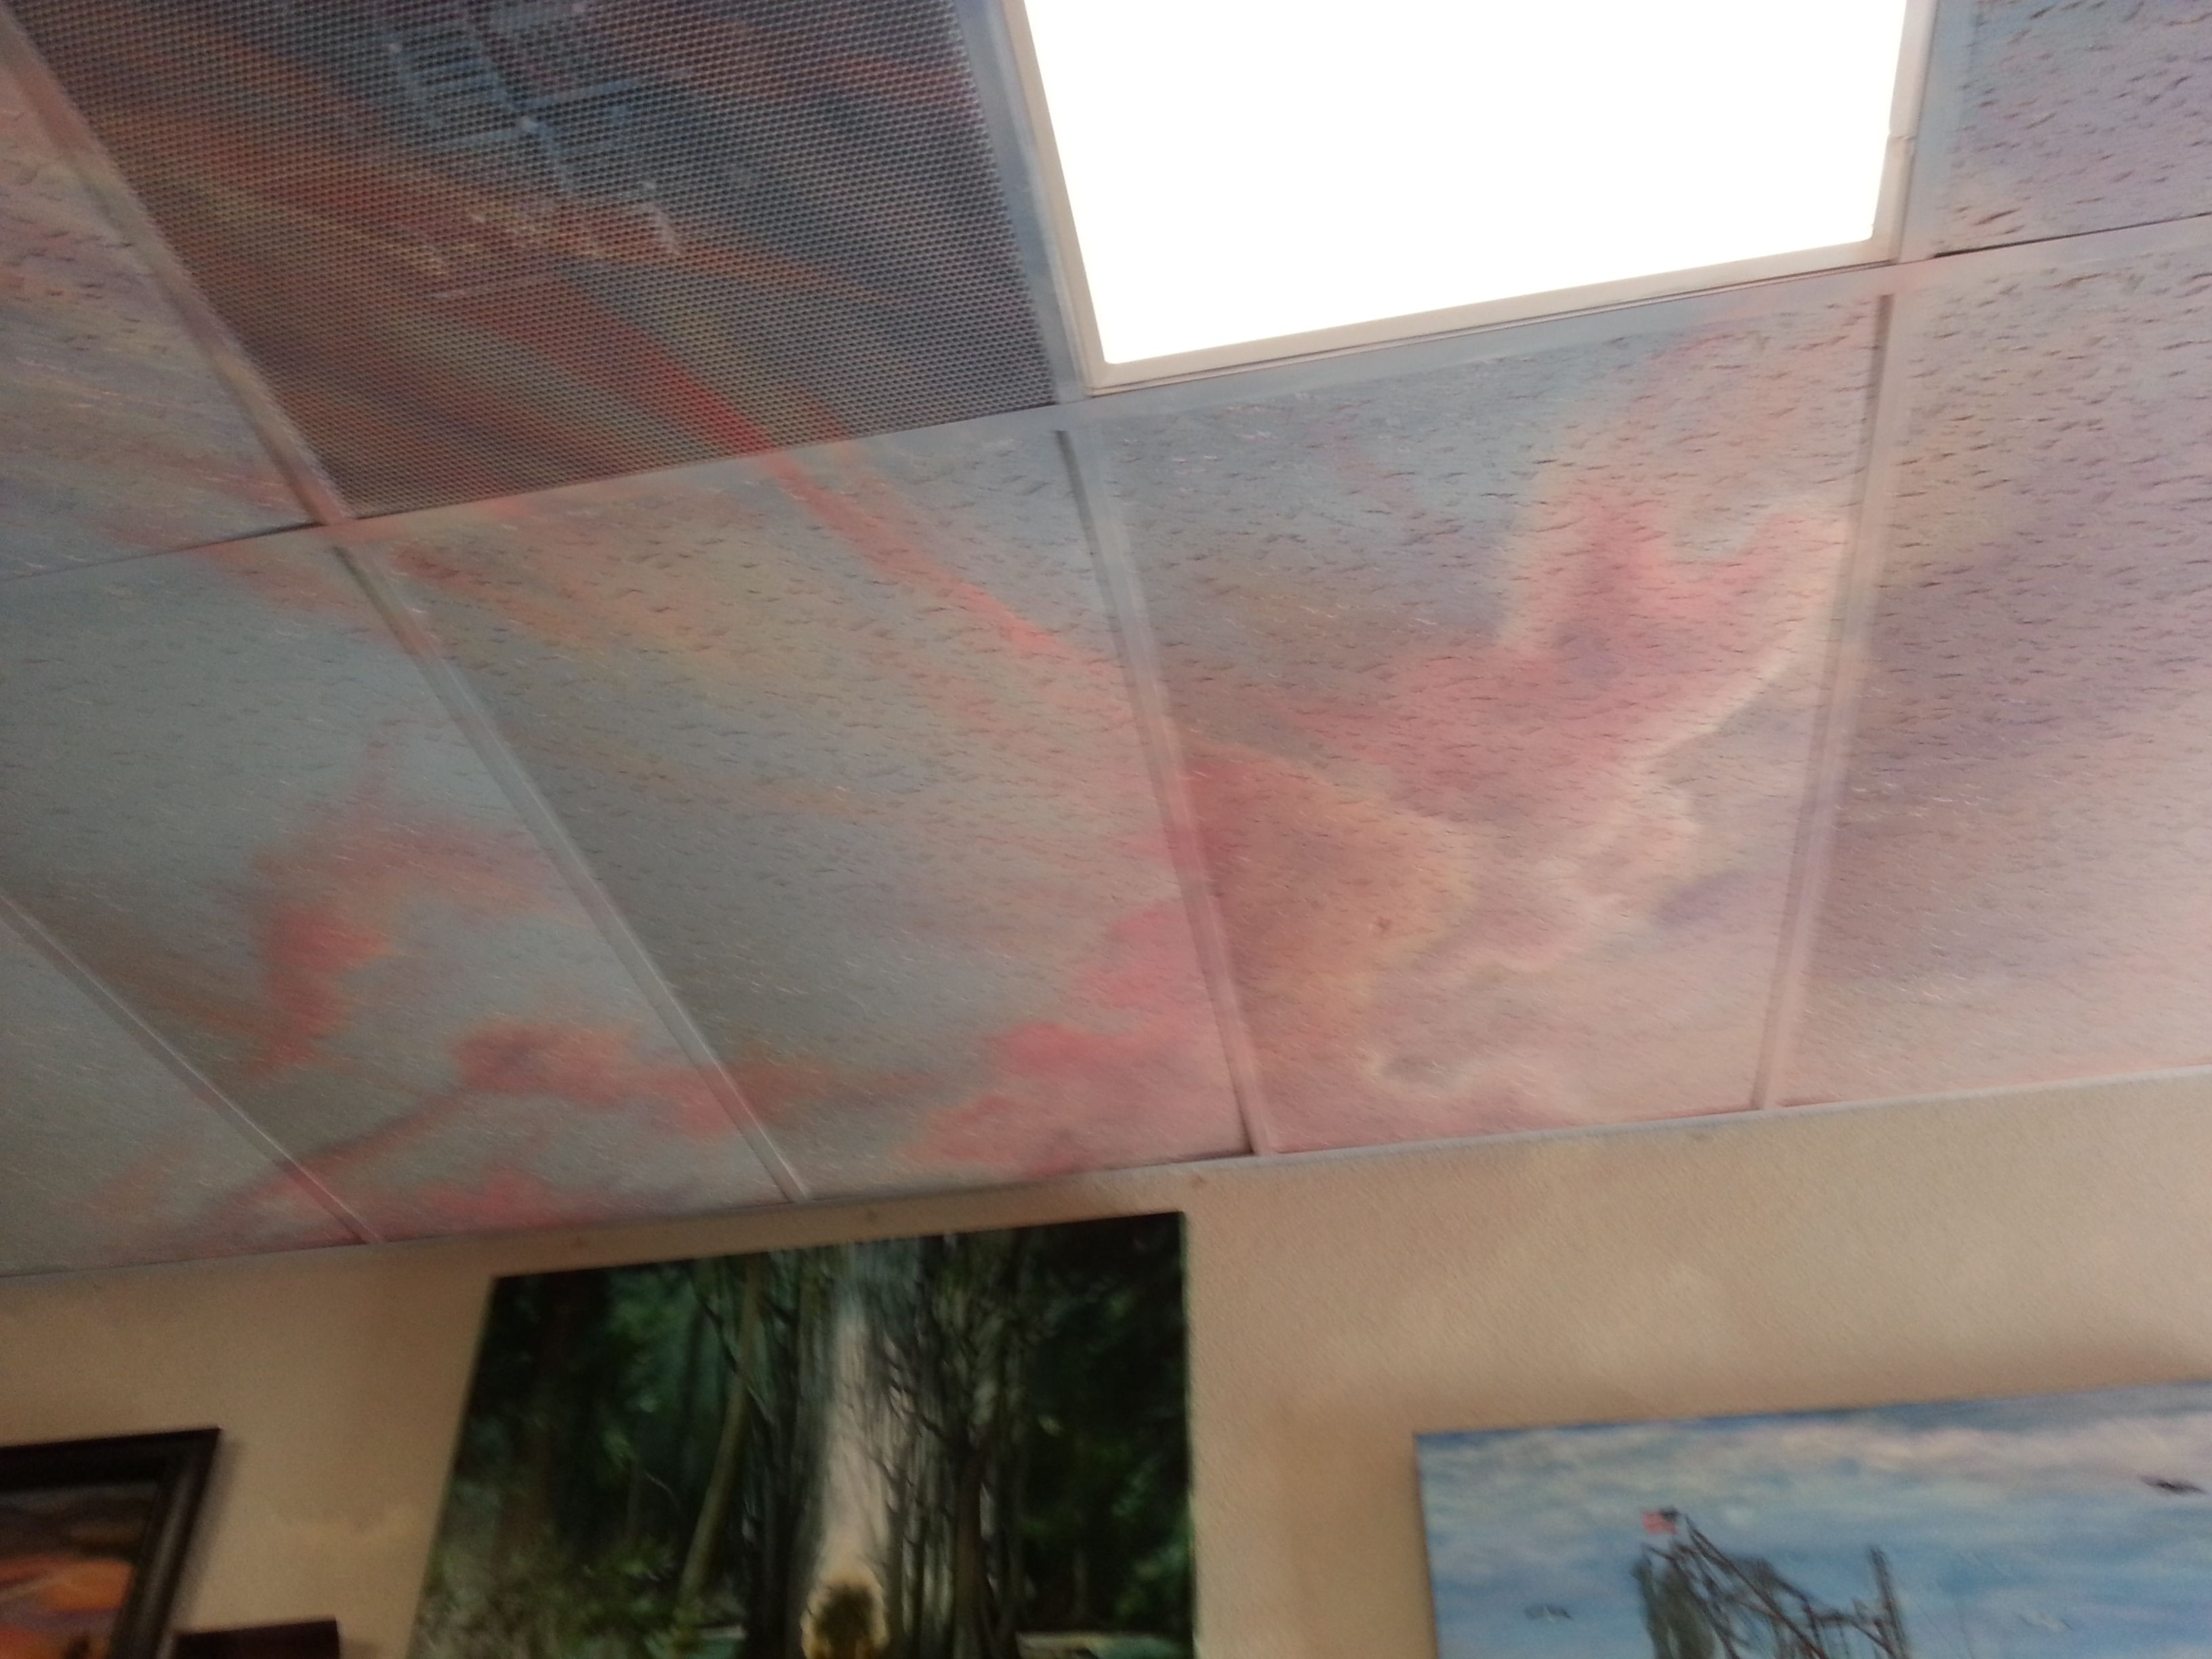 acoustic ceiling tiles painted sky - Google Search